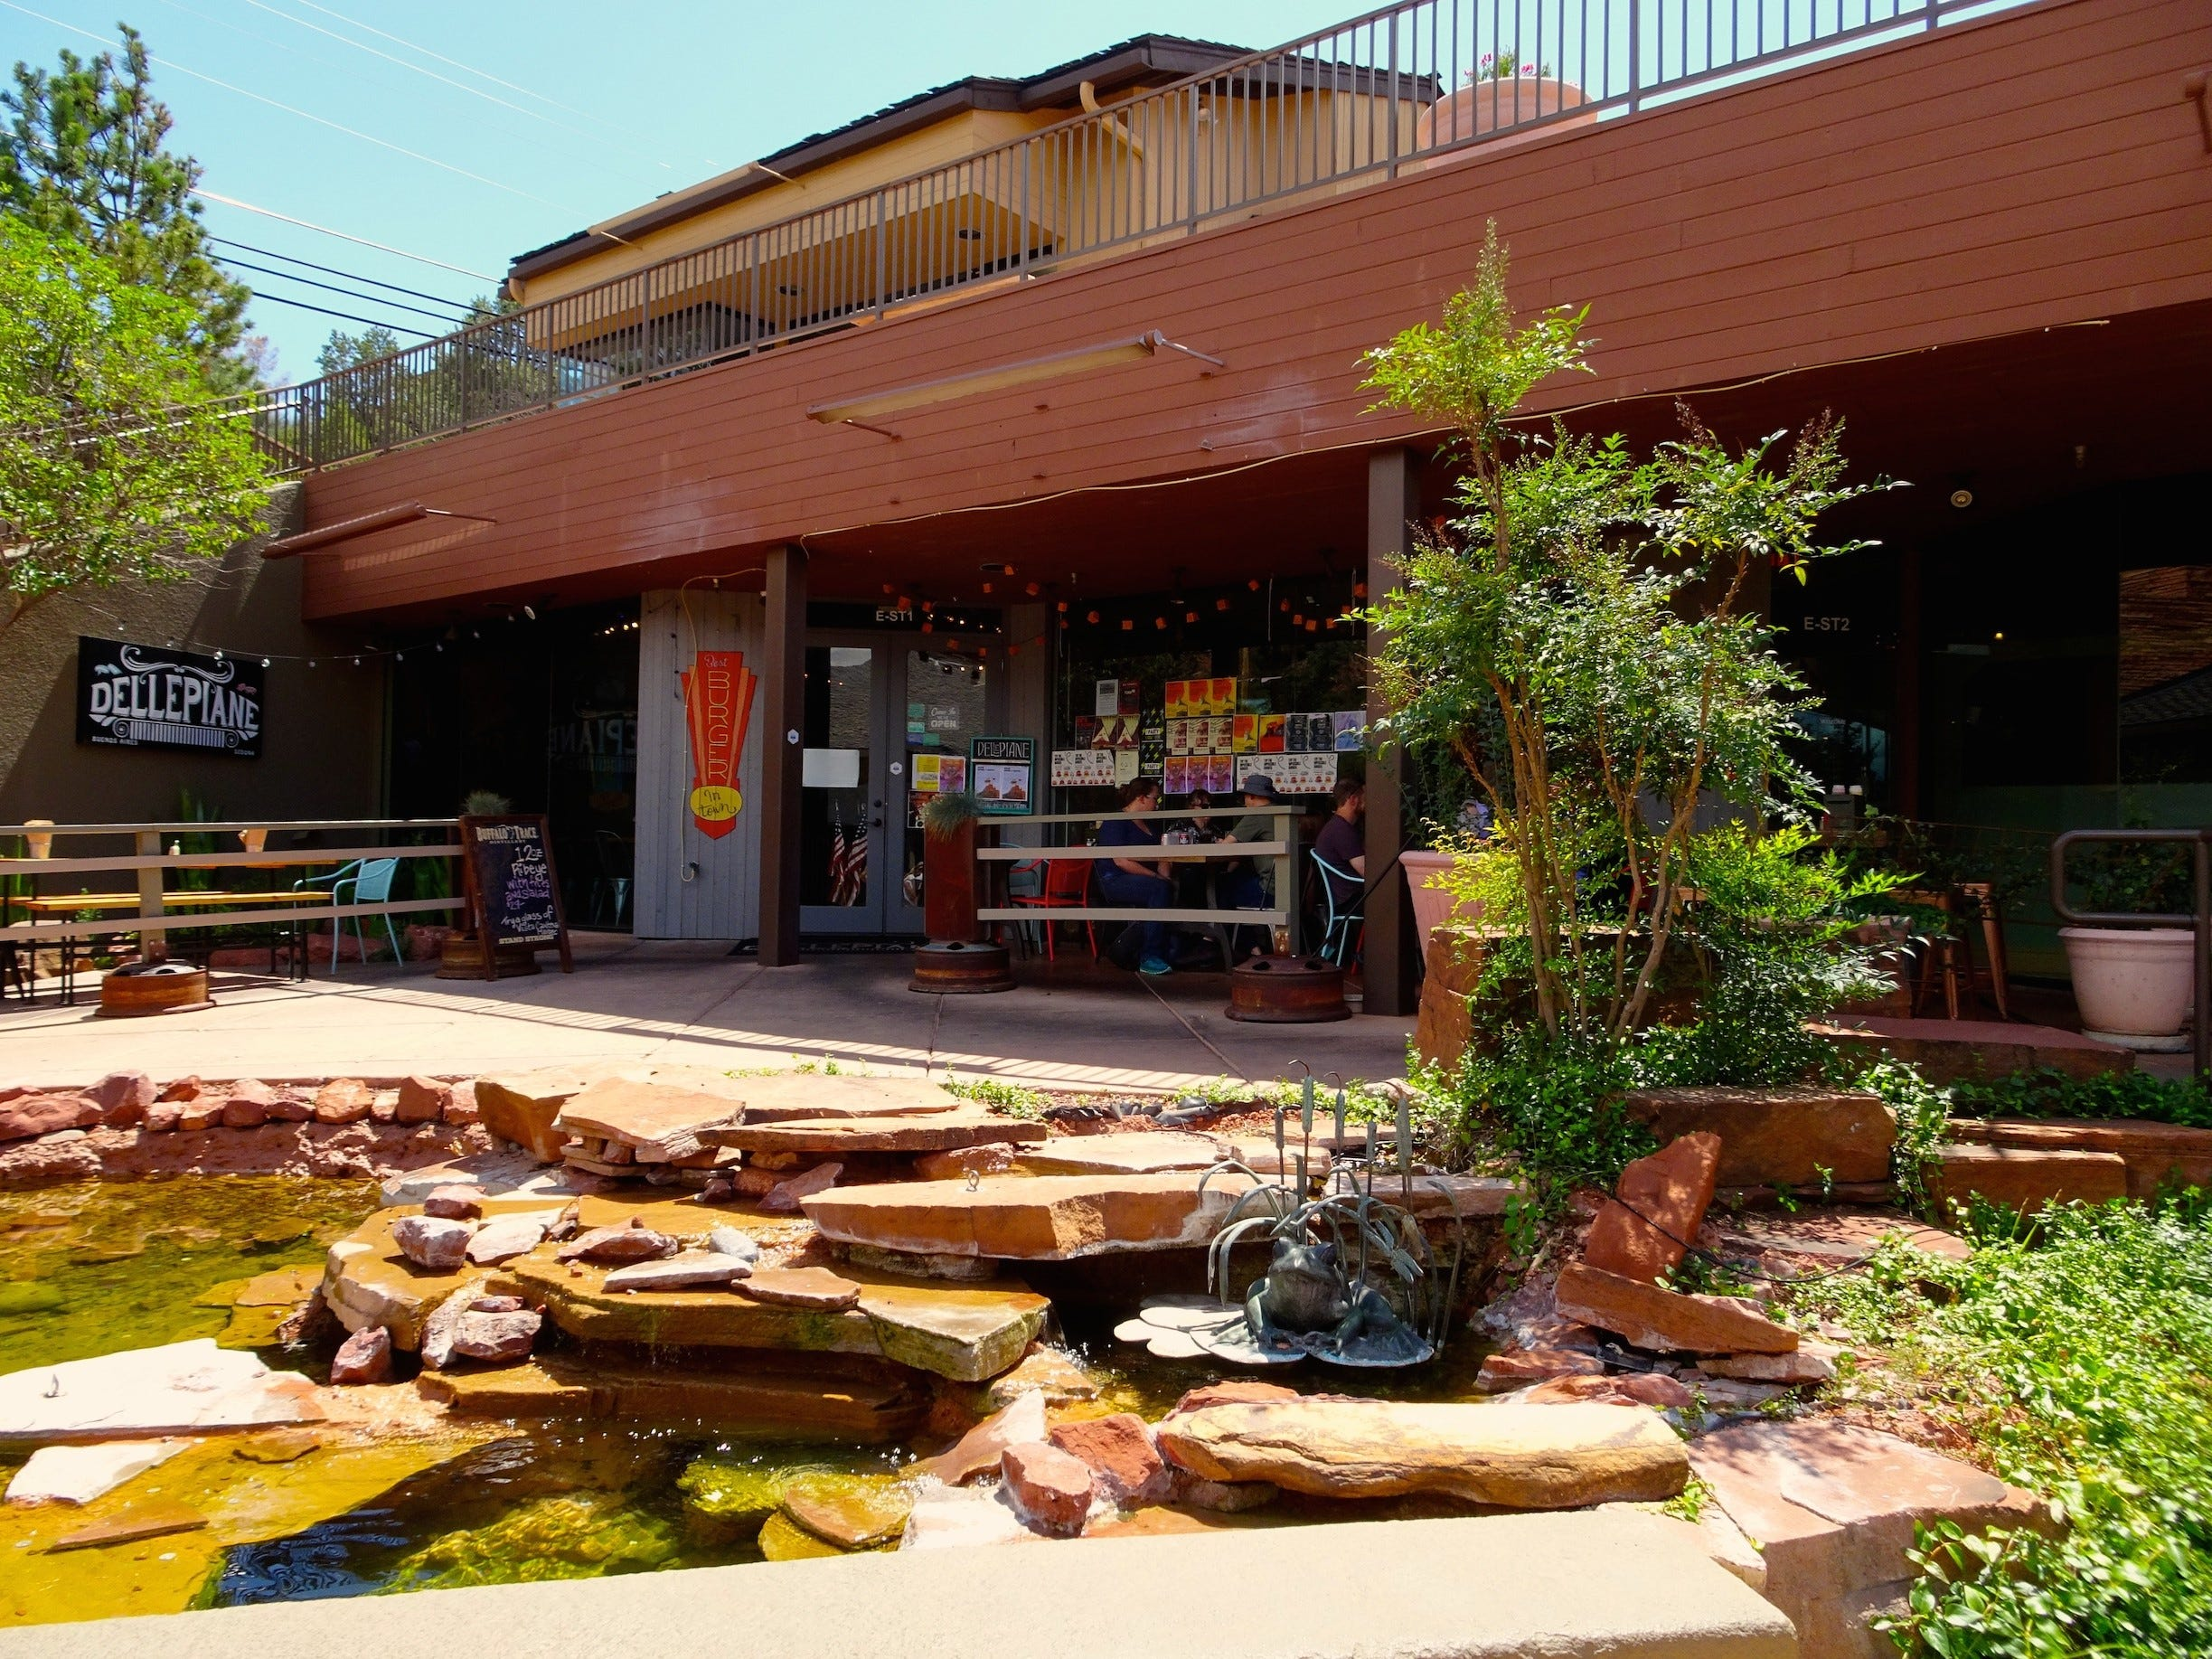 Dellepiane's is tucked away among the shops and restaurants of the Hillside Sedona plaza.